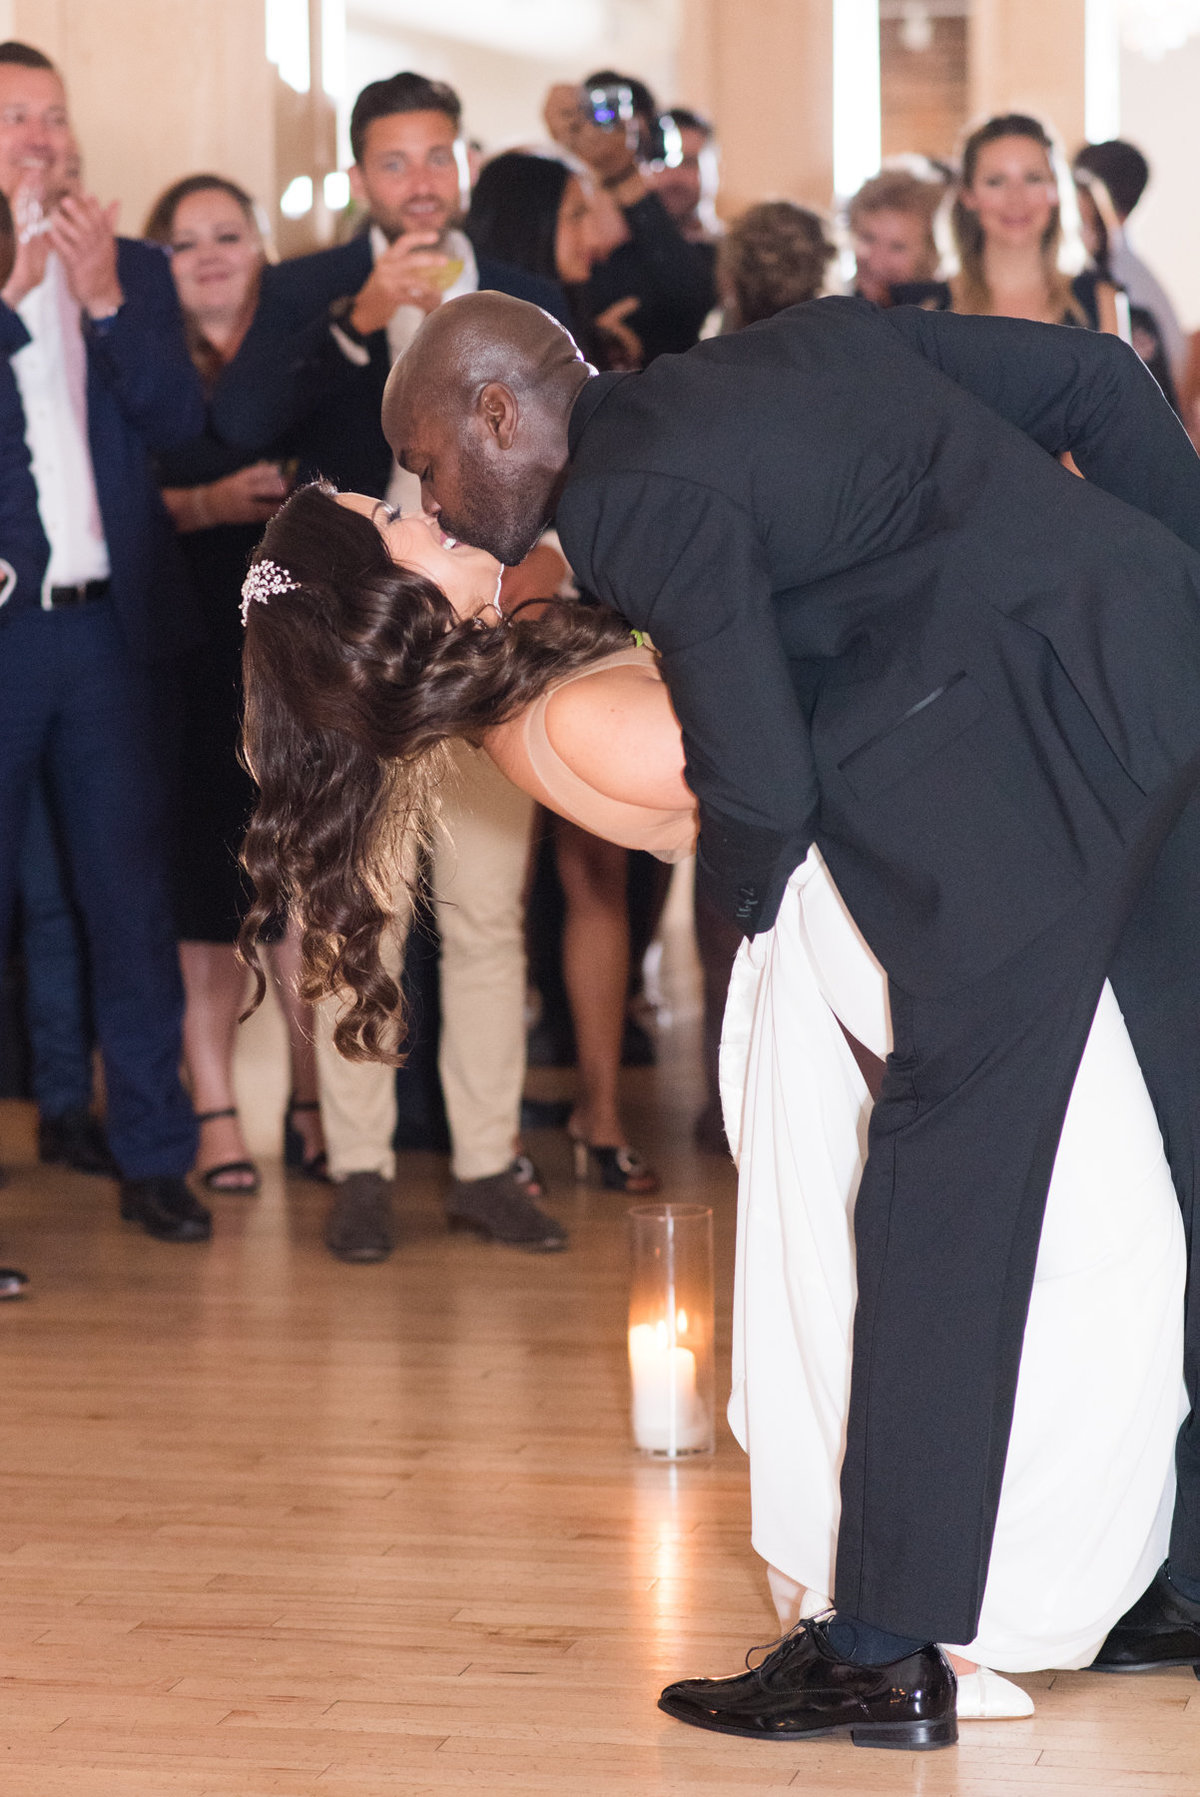 Groom dips his bride for a kiss during their first dance at The Chanterelle in Thunder Bay